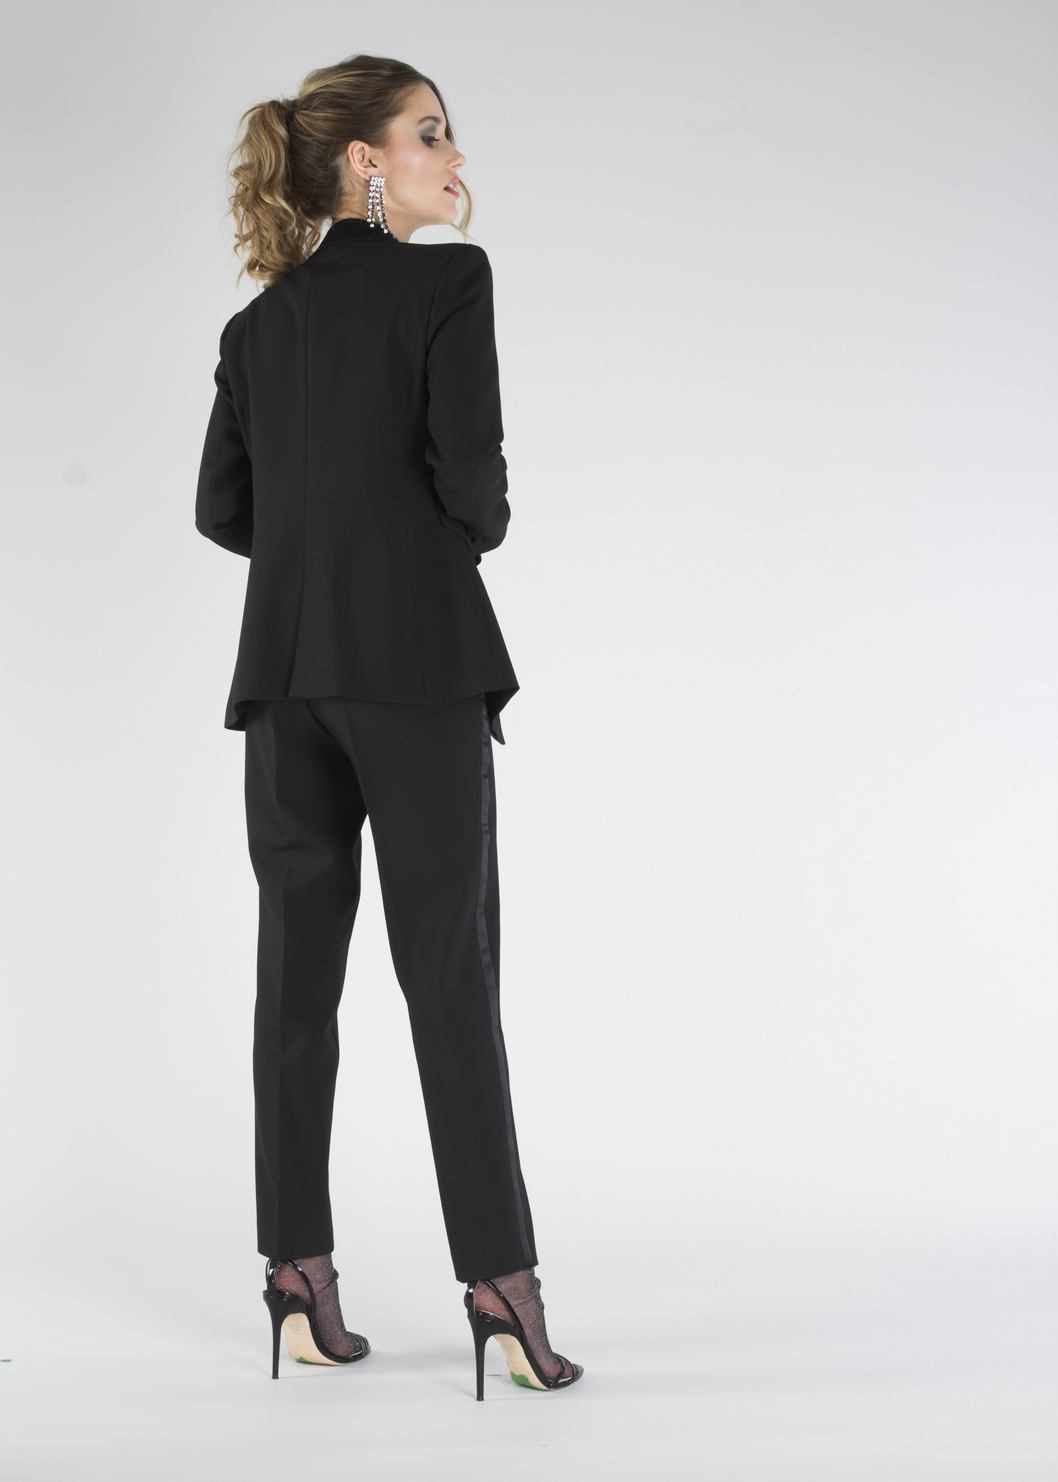 California Moonrise Tuxedo Pants